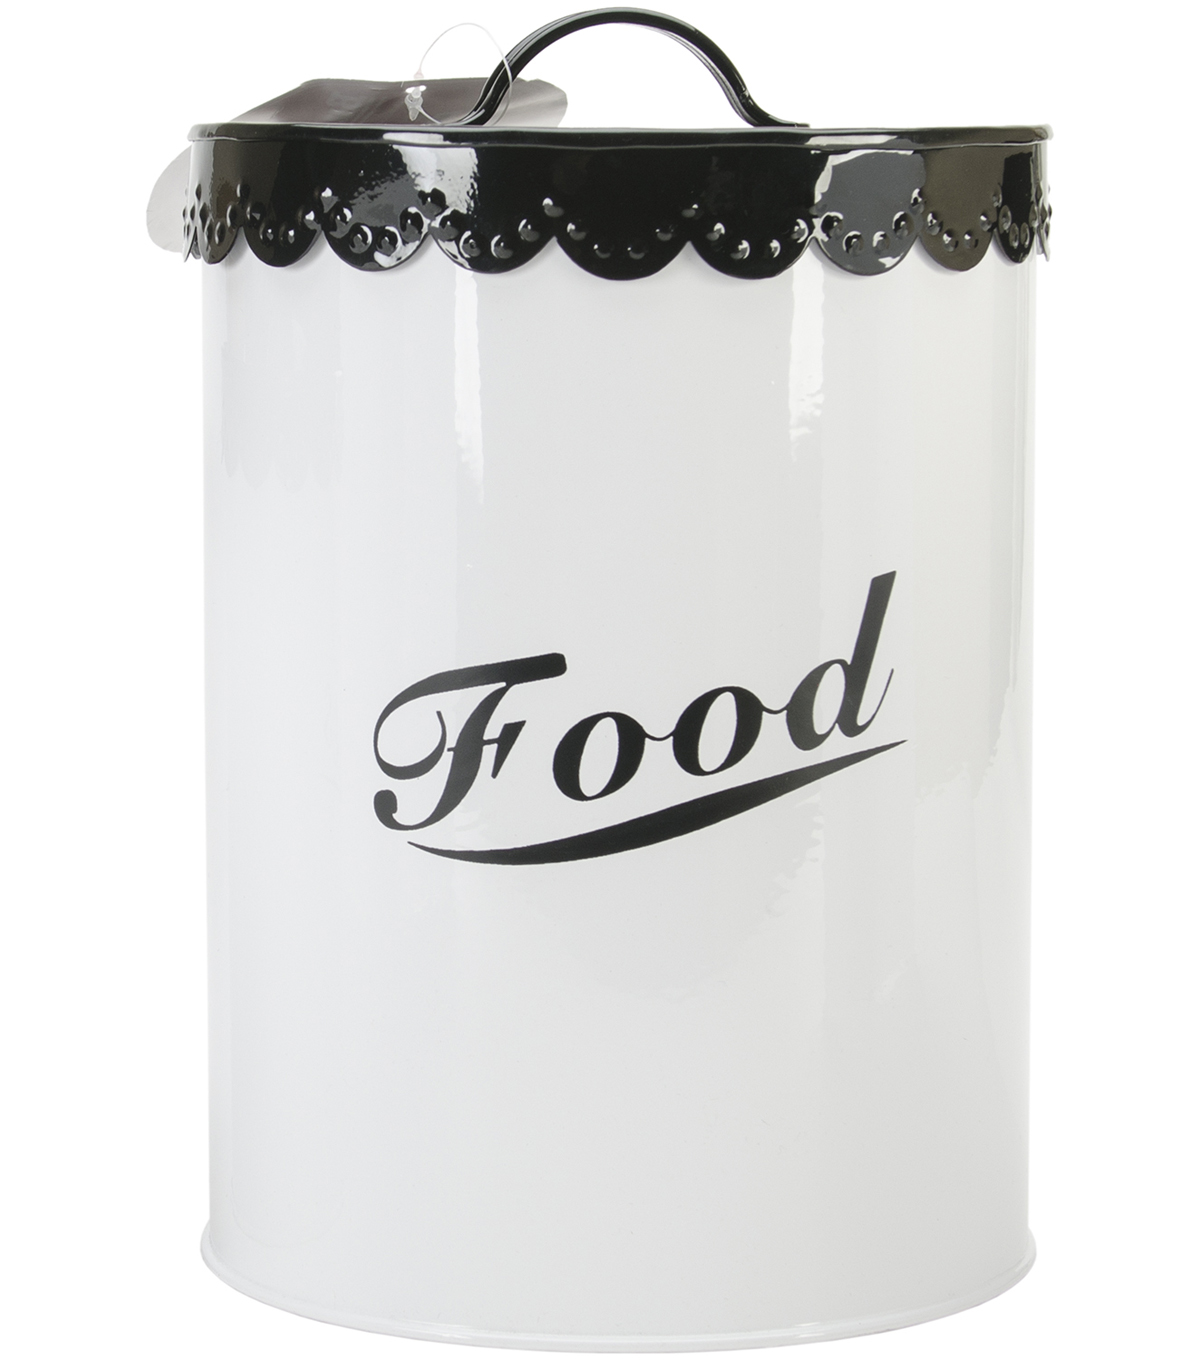 Buddy\u0027s Line Food & Treat Canister Set